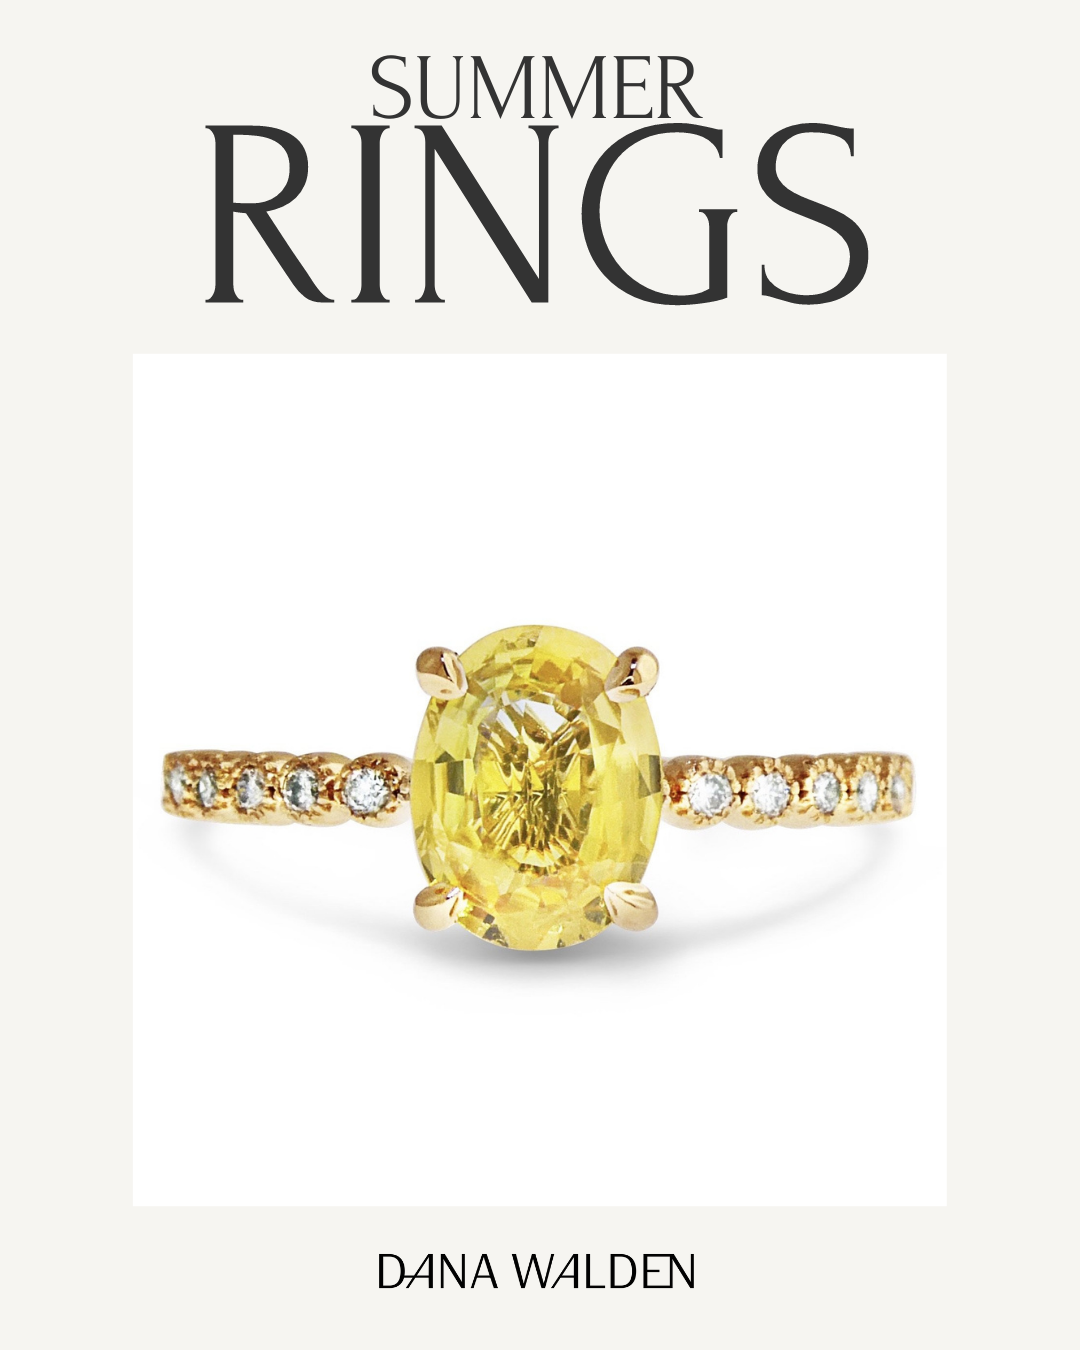 Yellow sapphire engagement ring perfect for summer proposal